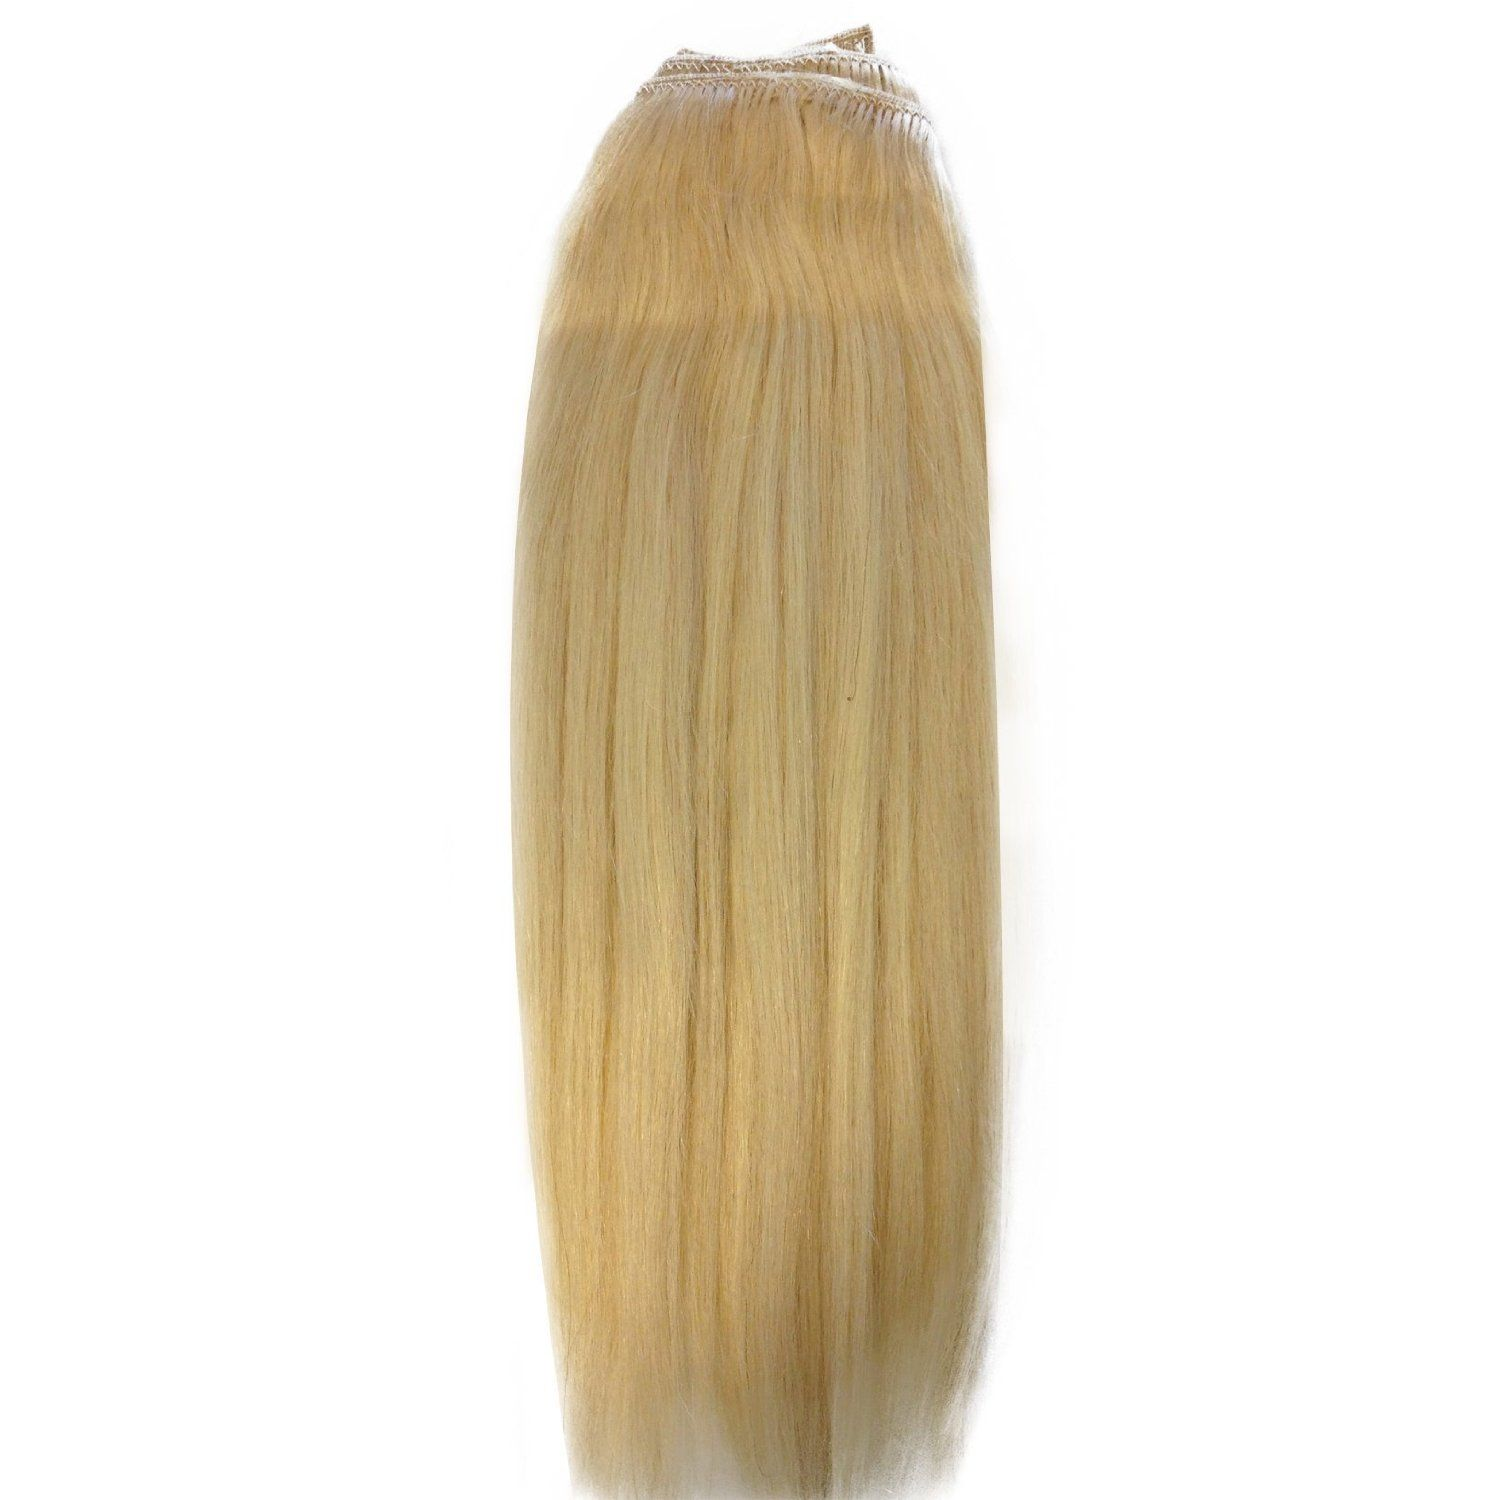 20 inch luxury hair weft and clips diy set to make your own hair 20 inch luxury hair weft and clips diy set to make your own hair extensions pmusecretfo Choice Image